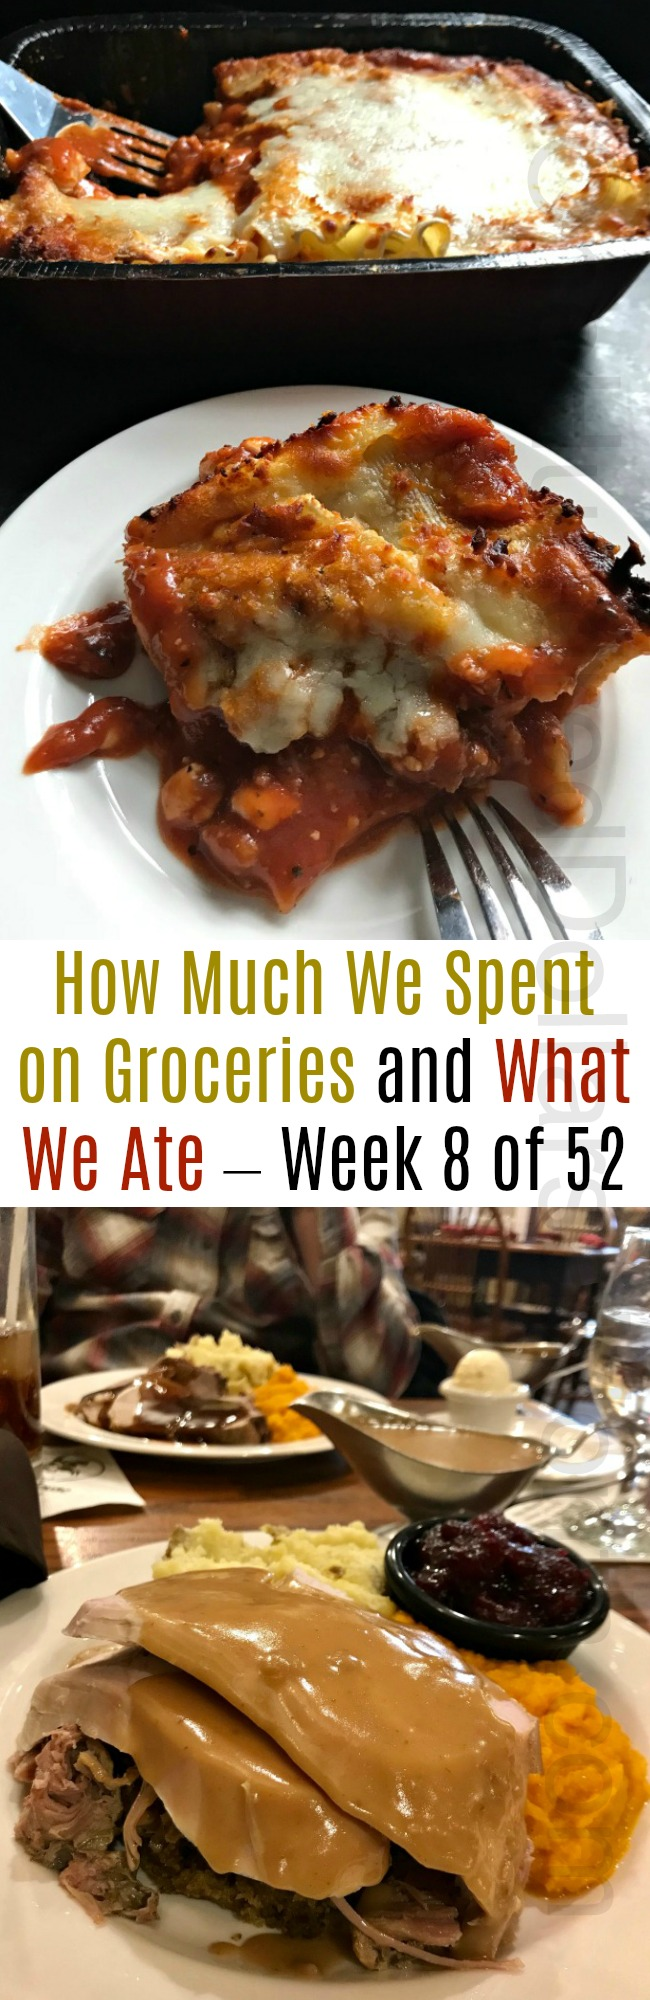 How Much We Spent on Groceries and What We Ate – Week 8 of 52